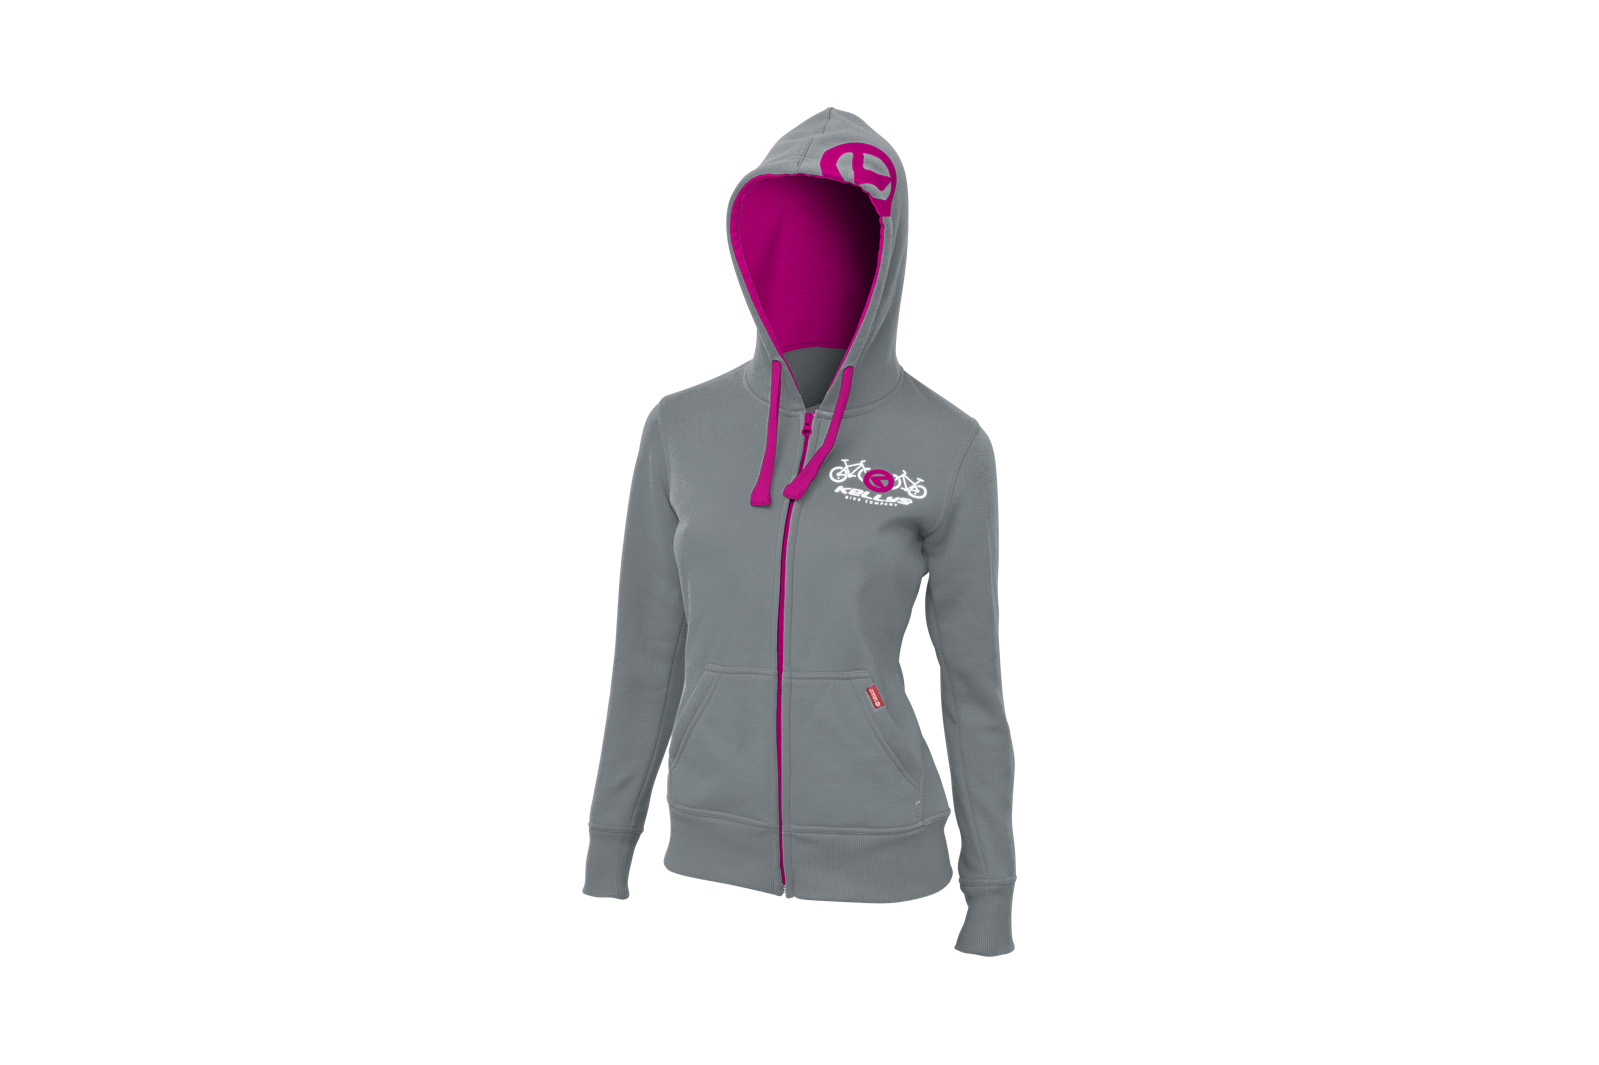 Sweatjacke KELLYS WOMEN´S BASIC Grey - XS - Sweatjacke KELLYS WOMEN´S BASIC Grey - XS